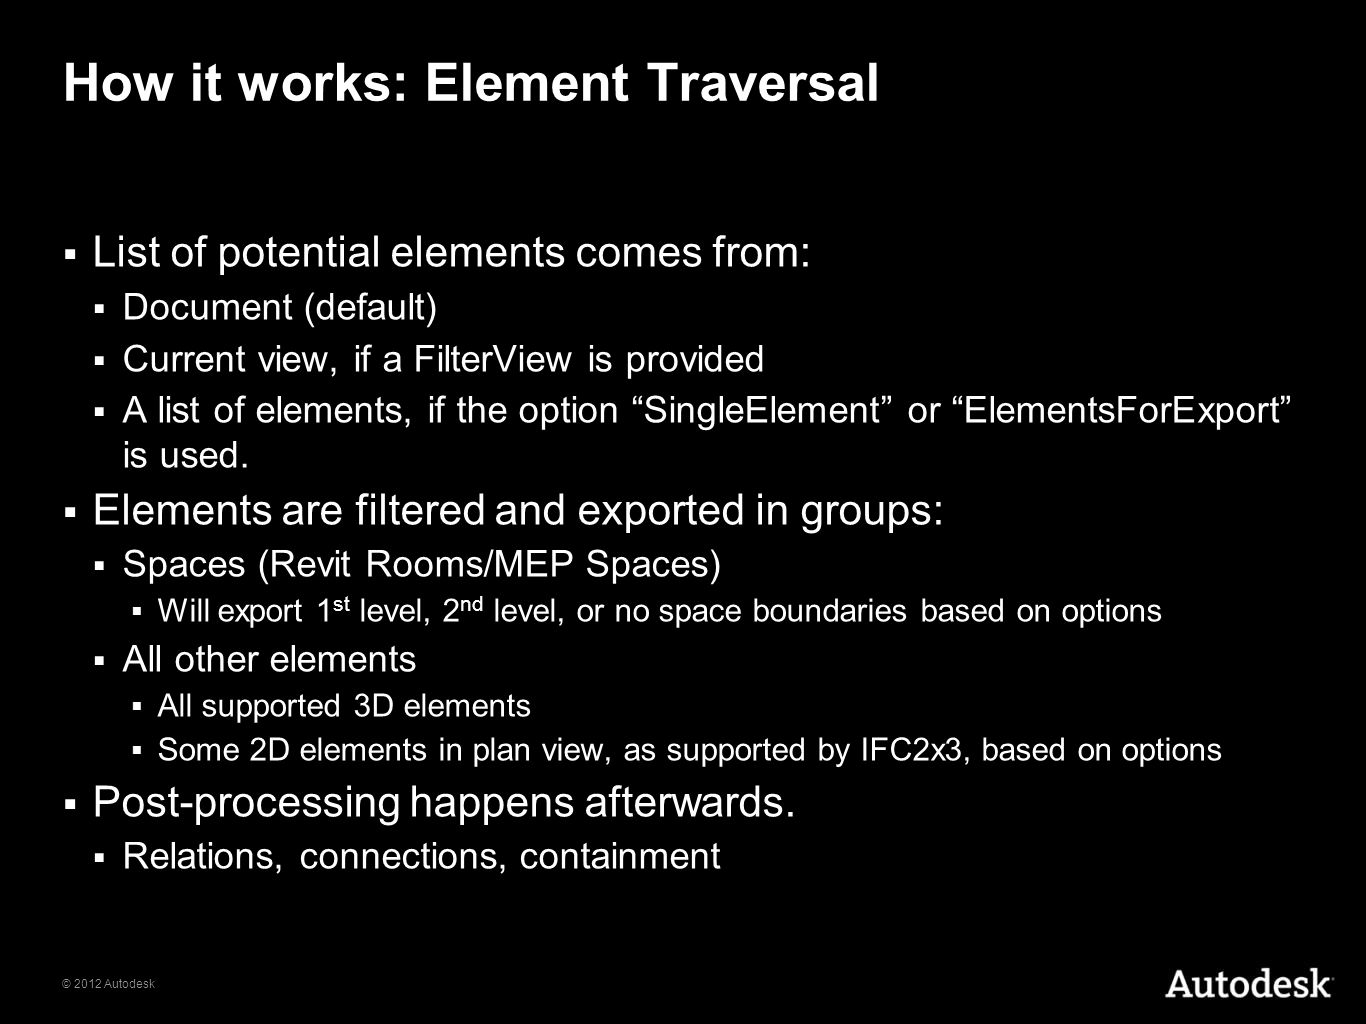 © 2012 Autodesk How it works: Element Traversal List of potential elements comes from: Document (default) Current view, if a FilterView is provided A